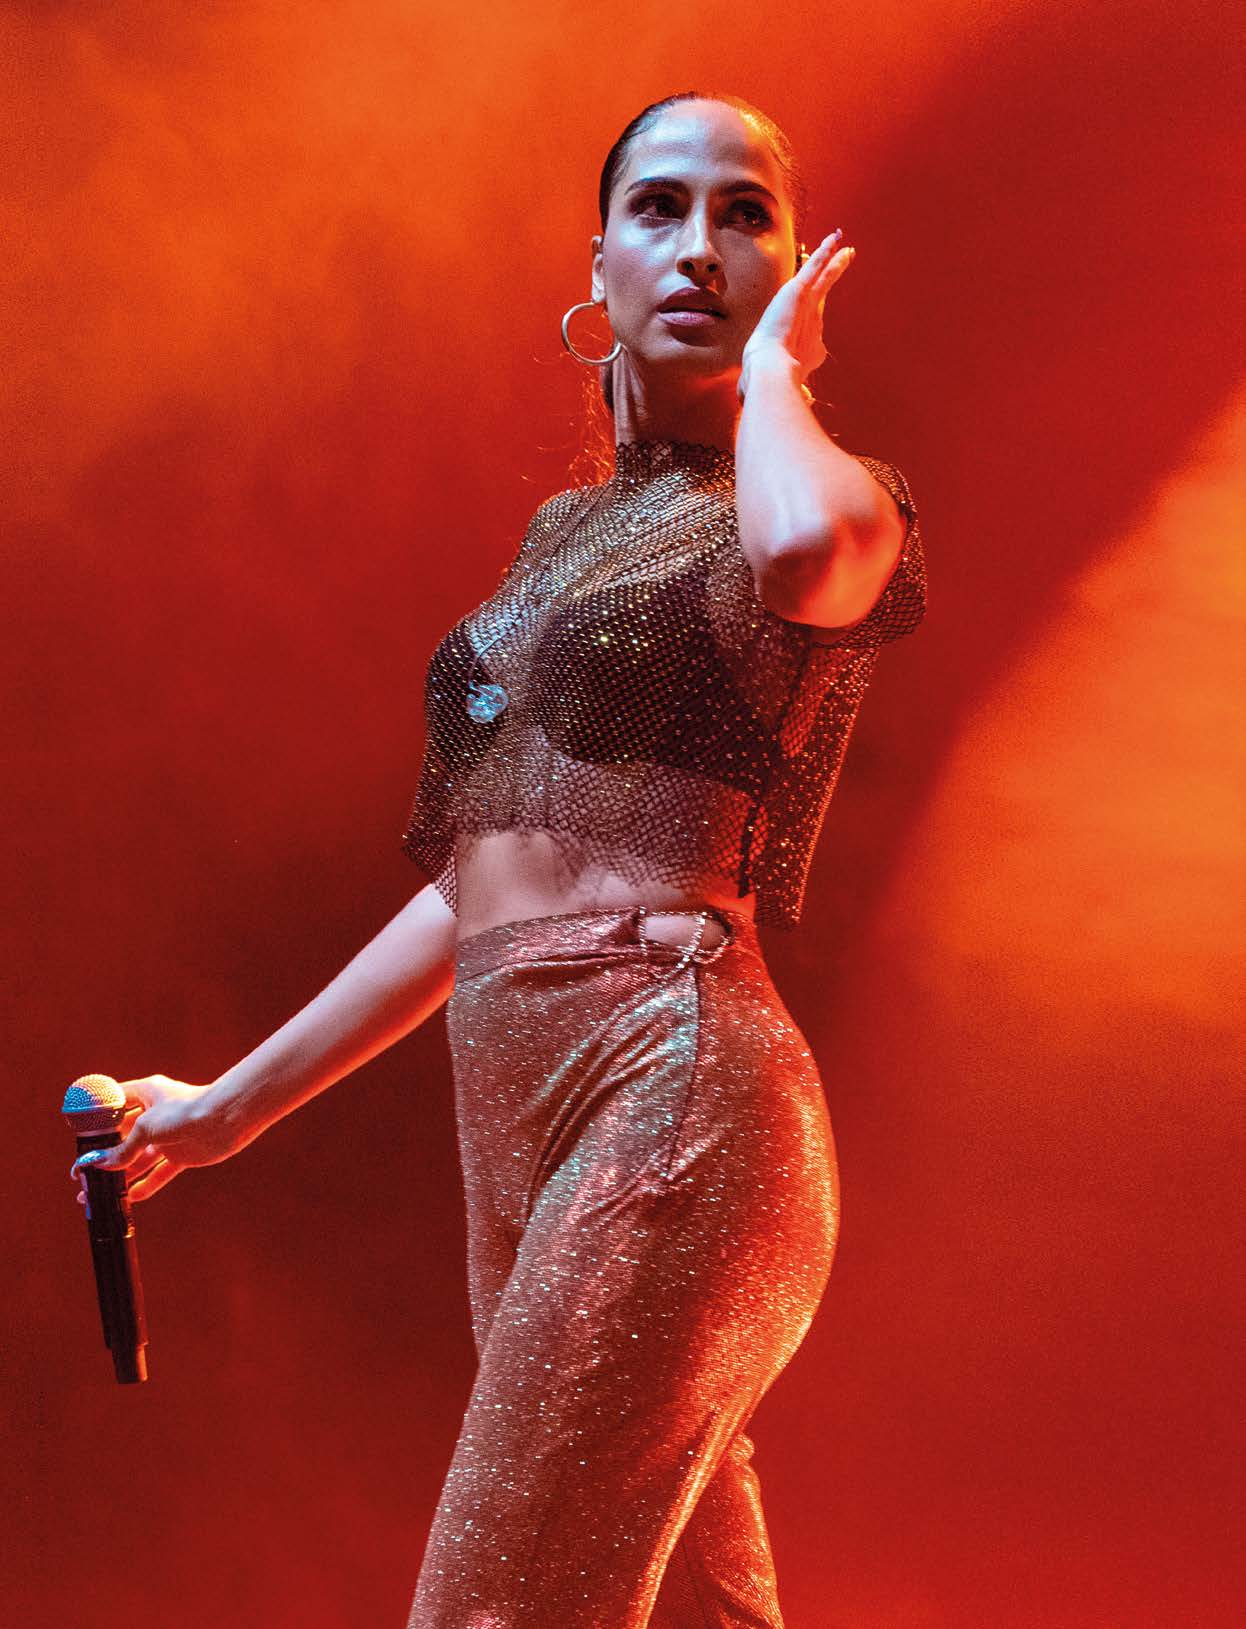 Get To Know Snoh Aalegra